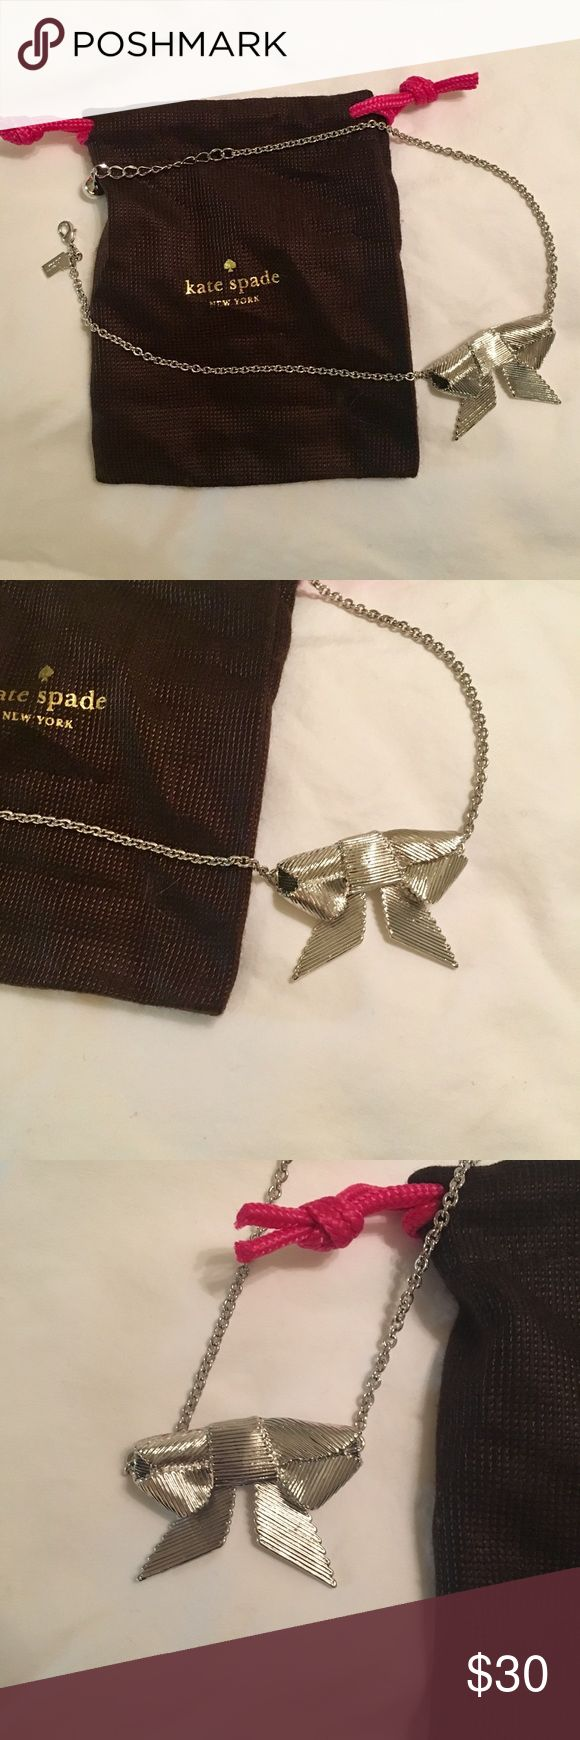 "kate spade ""All Wrapped Up"" silver bow necklace Silver chain and bow pendant from kate spade.   In fantastic condition - worn a couple times.   The jewelry bag pictured will ship with the necklace.  Now is about 2 inches across, chain can be as long as 16 inches. kate spade Jewelry Necklaces"